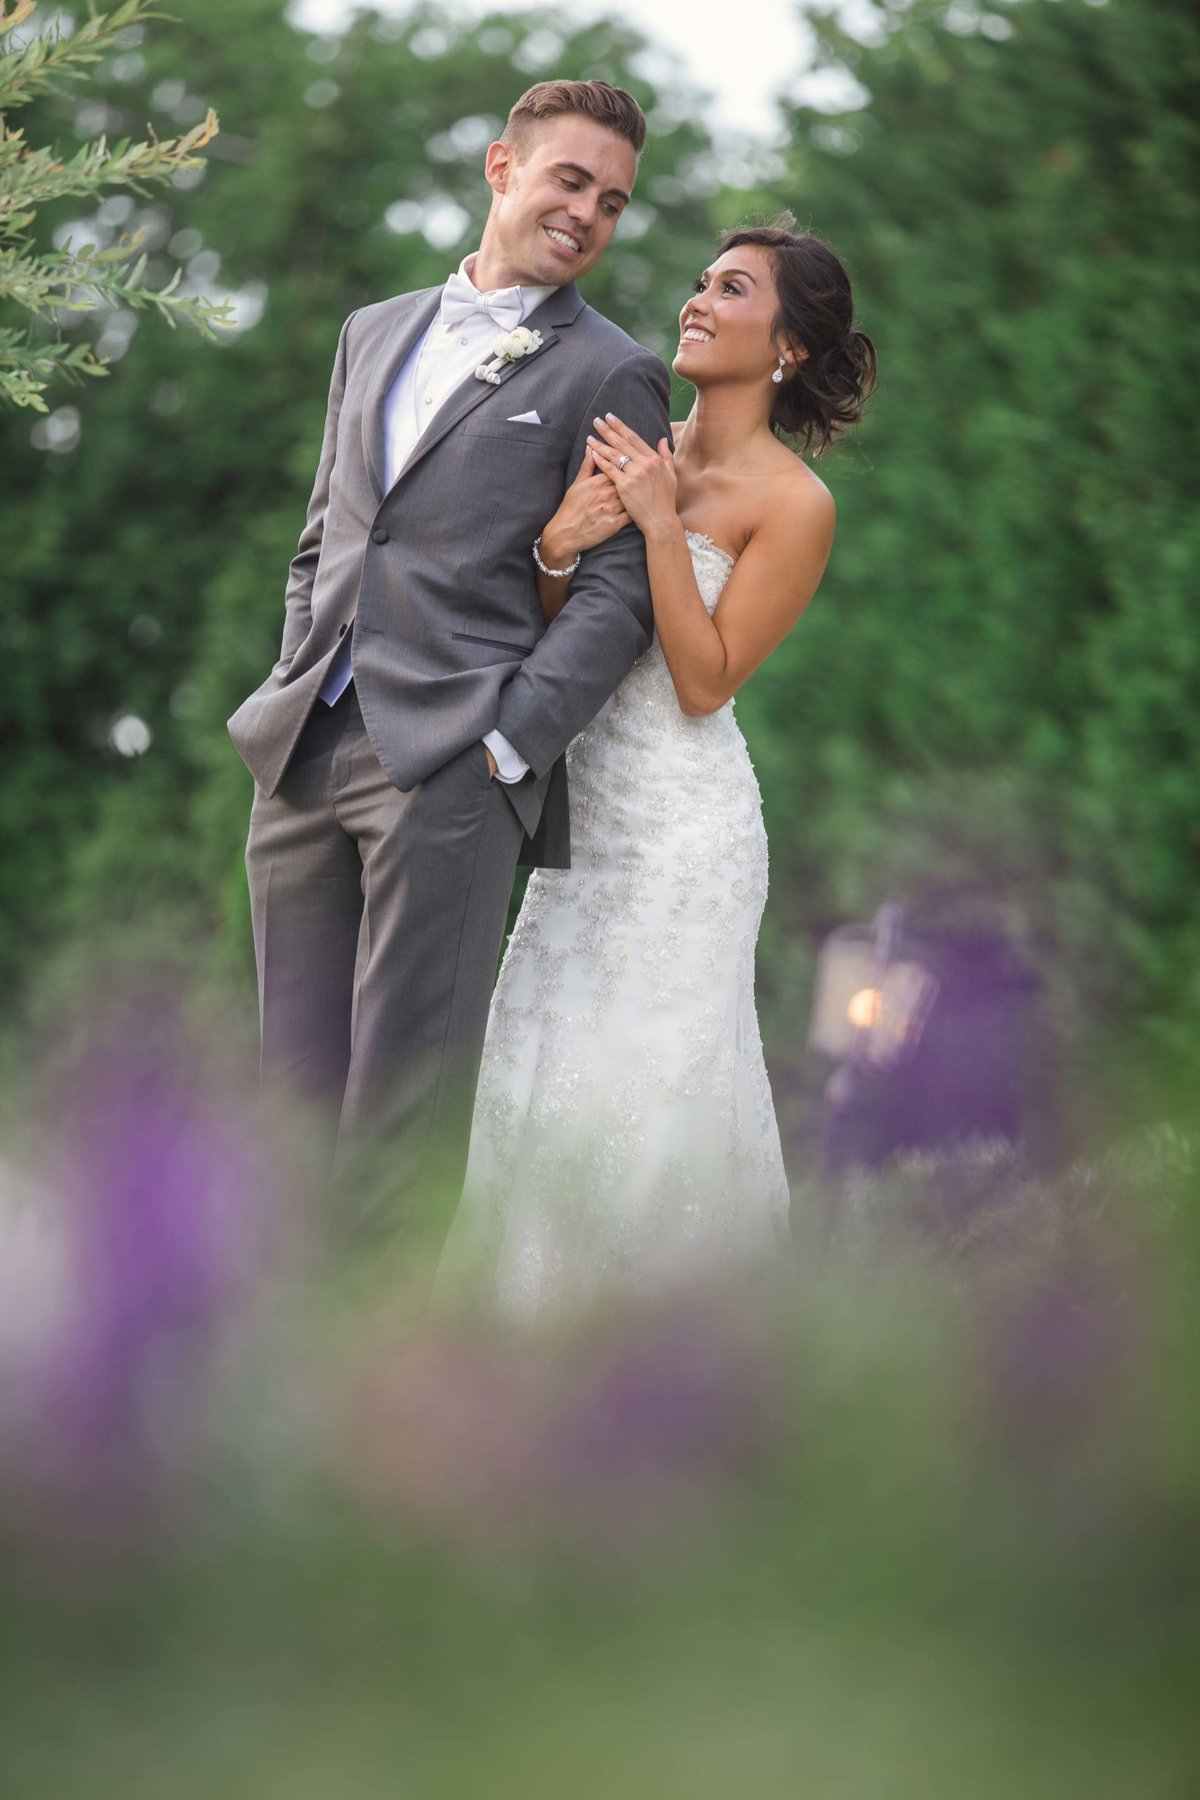 Bride and groom portrait from Larkfield Manor